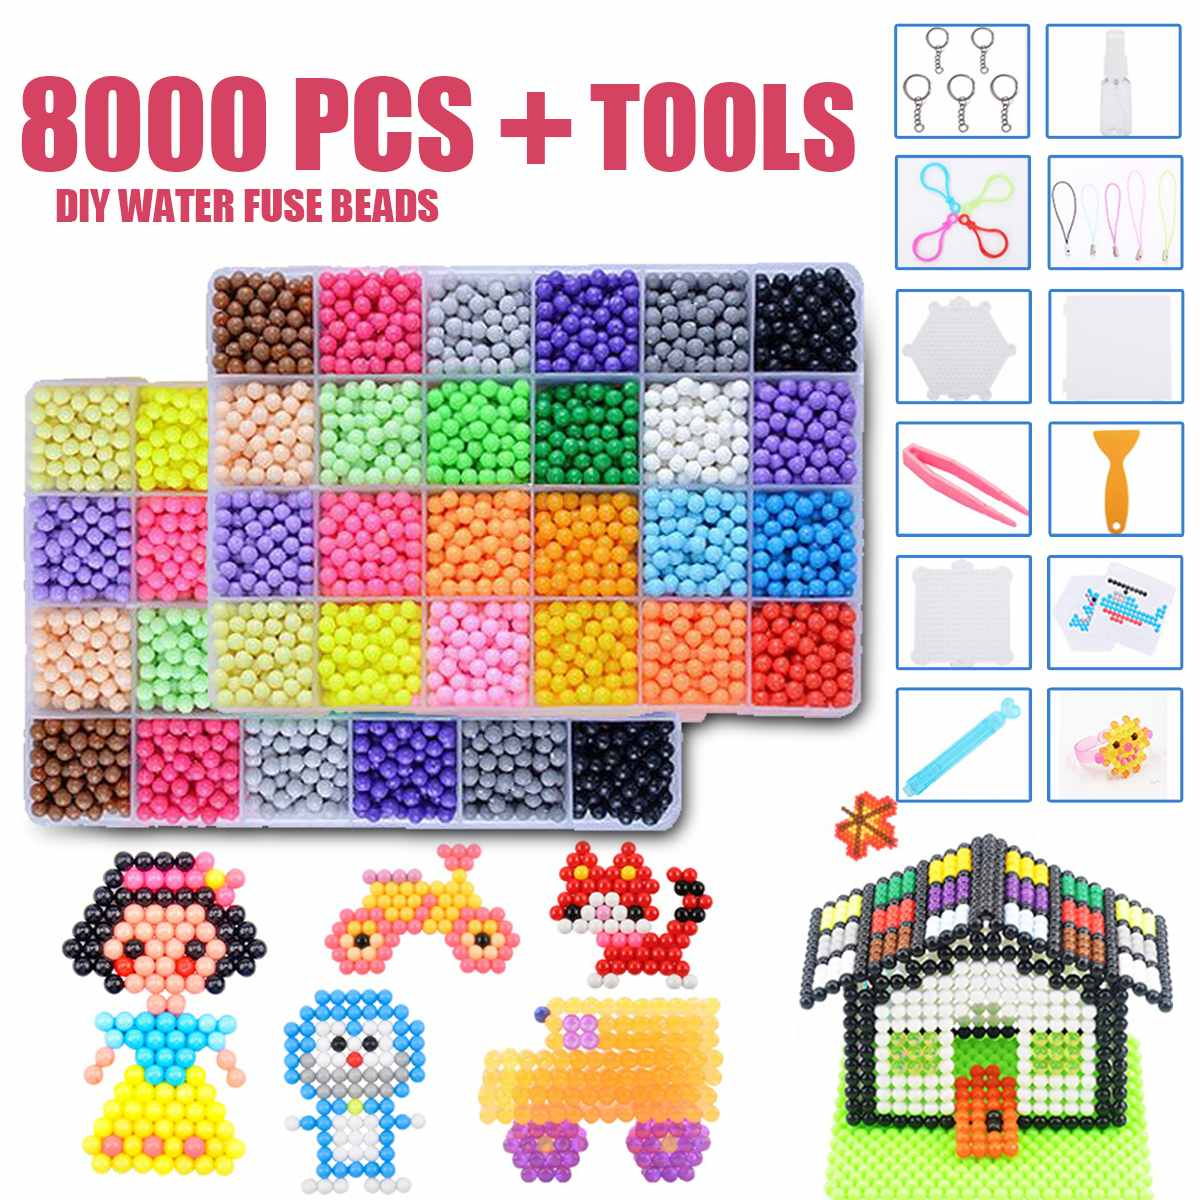 8000pcs DIY Water Sticky Fuse Beads Plastic Toys For Children Educational Learning Funny Toys Crafts Birthday Gift For Kids